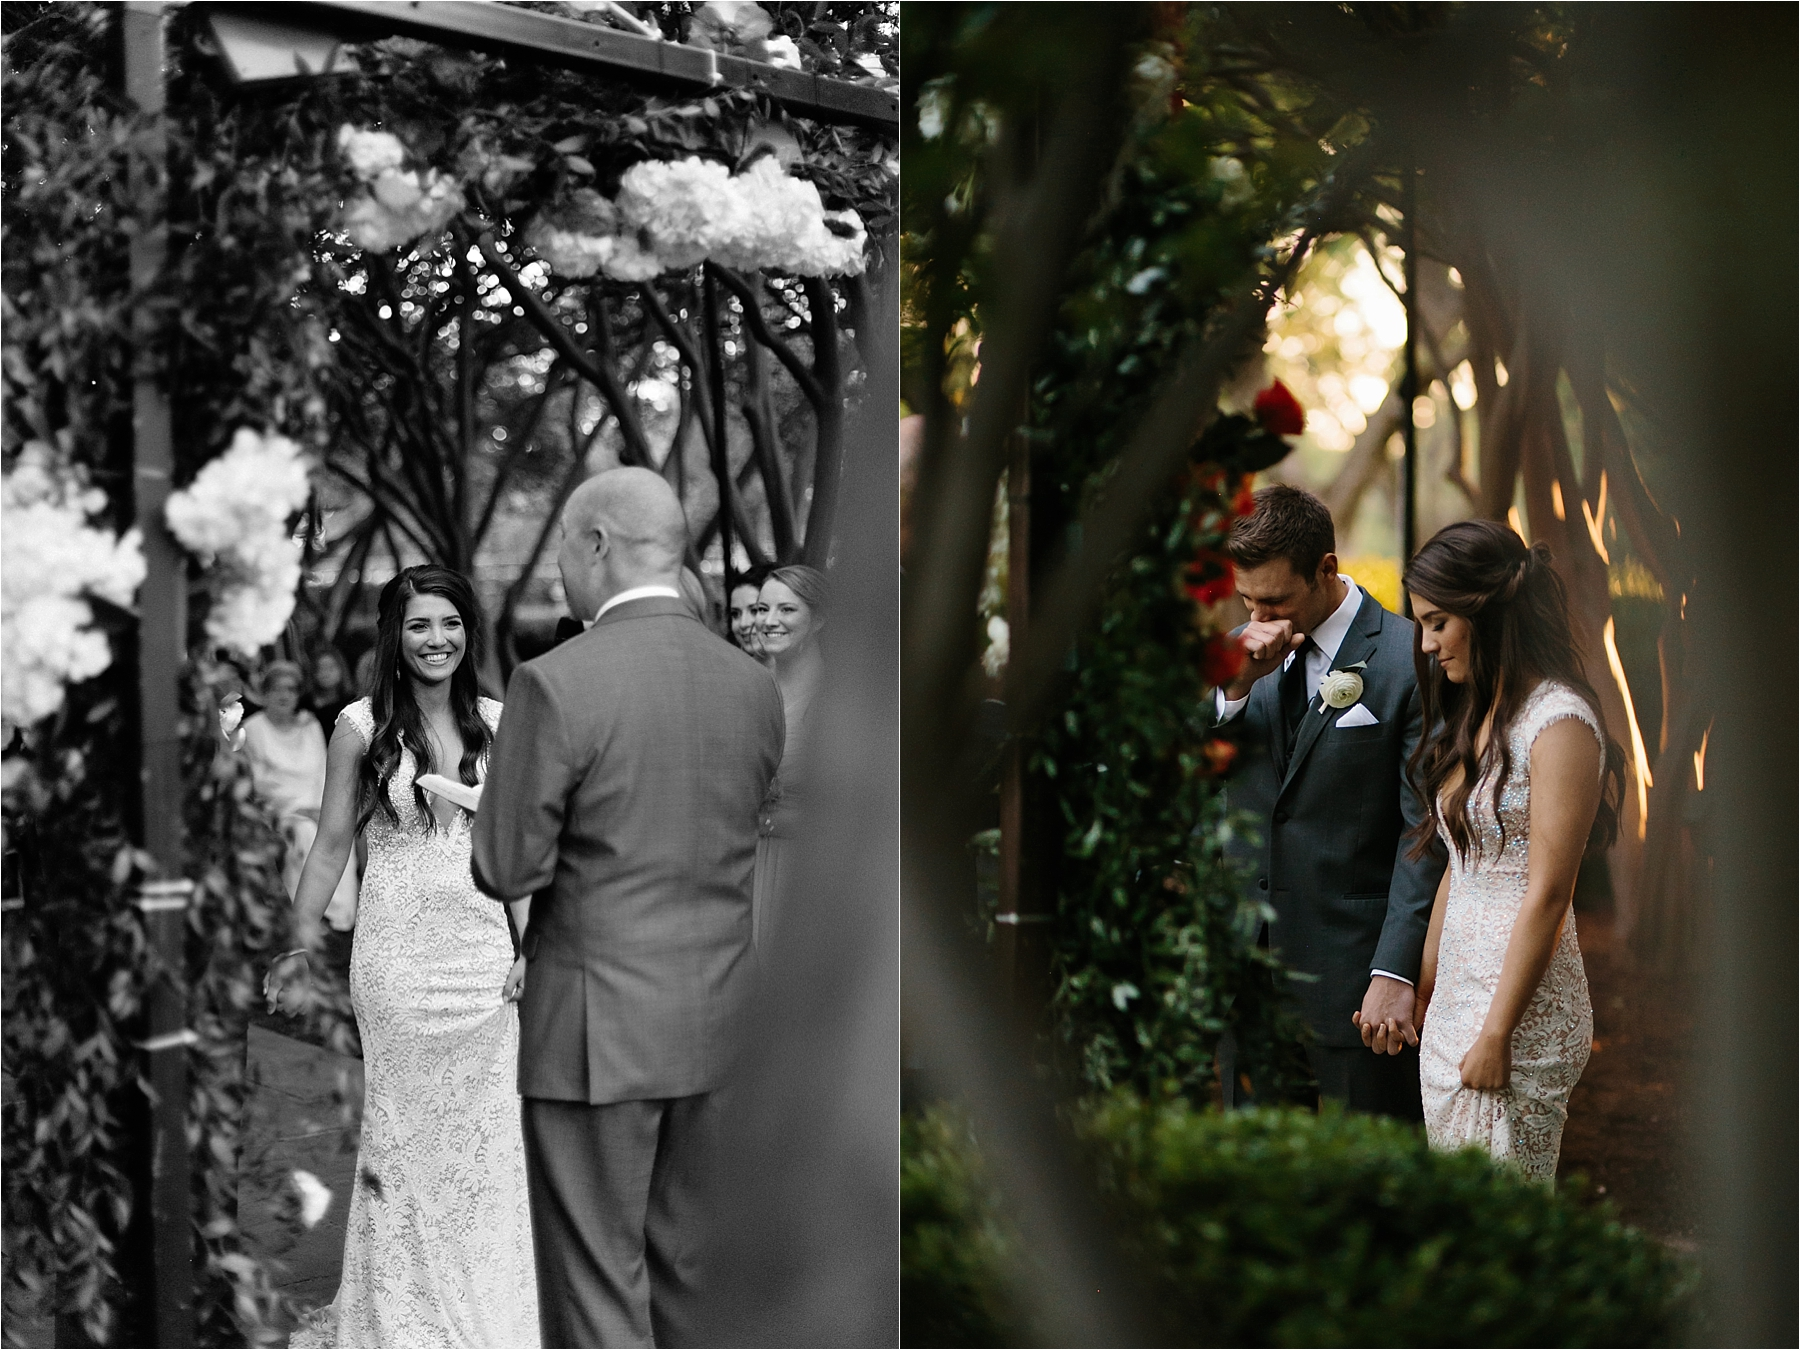 Devyn + Caden __ a Dallas Arboretum Garden Style Wedding by North Texas Wedding Photographer Rachel Meagan Photography __ 093